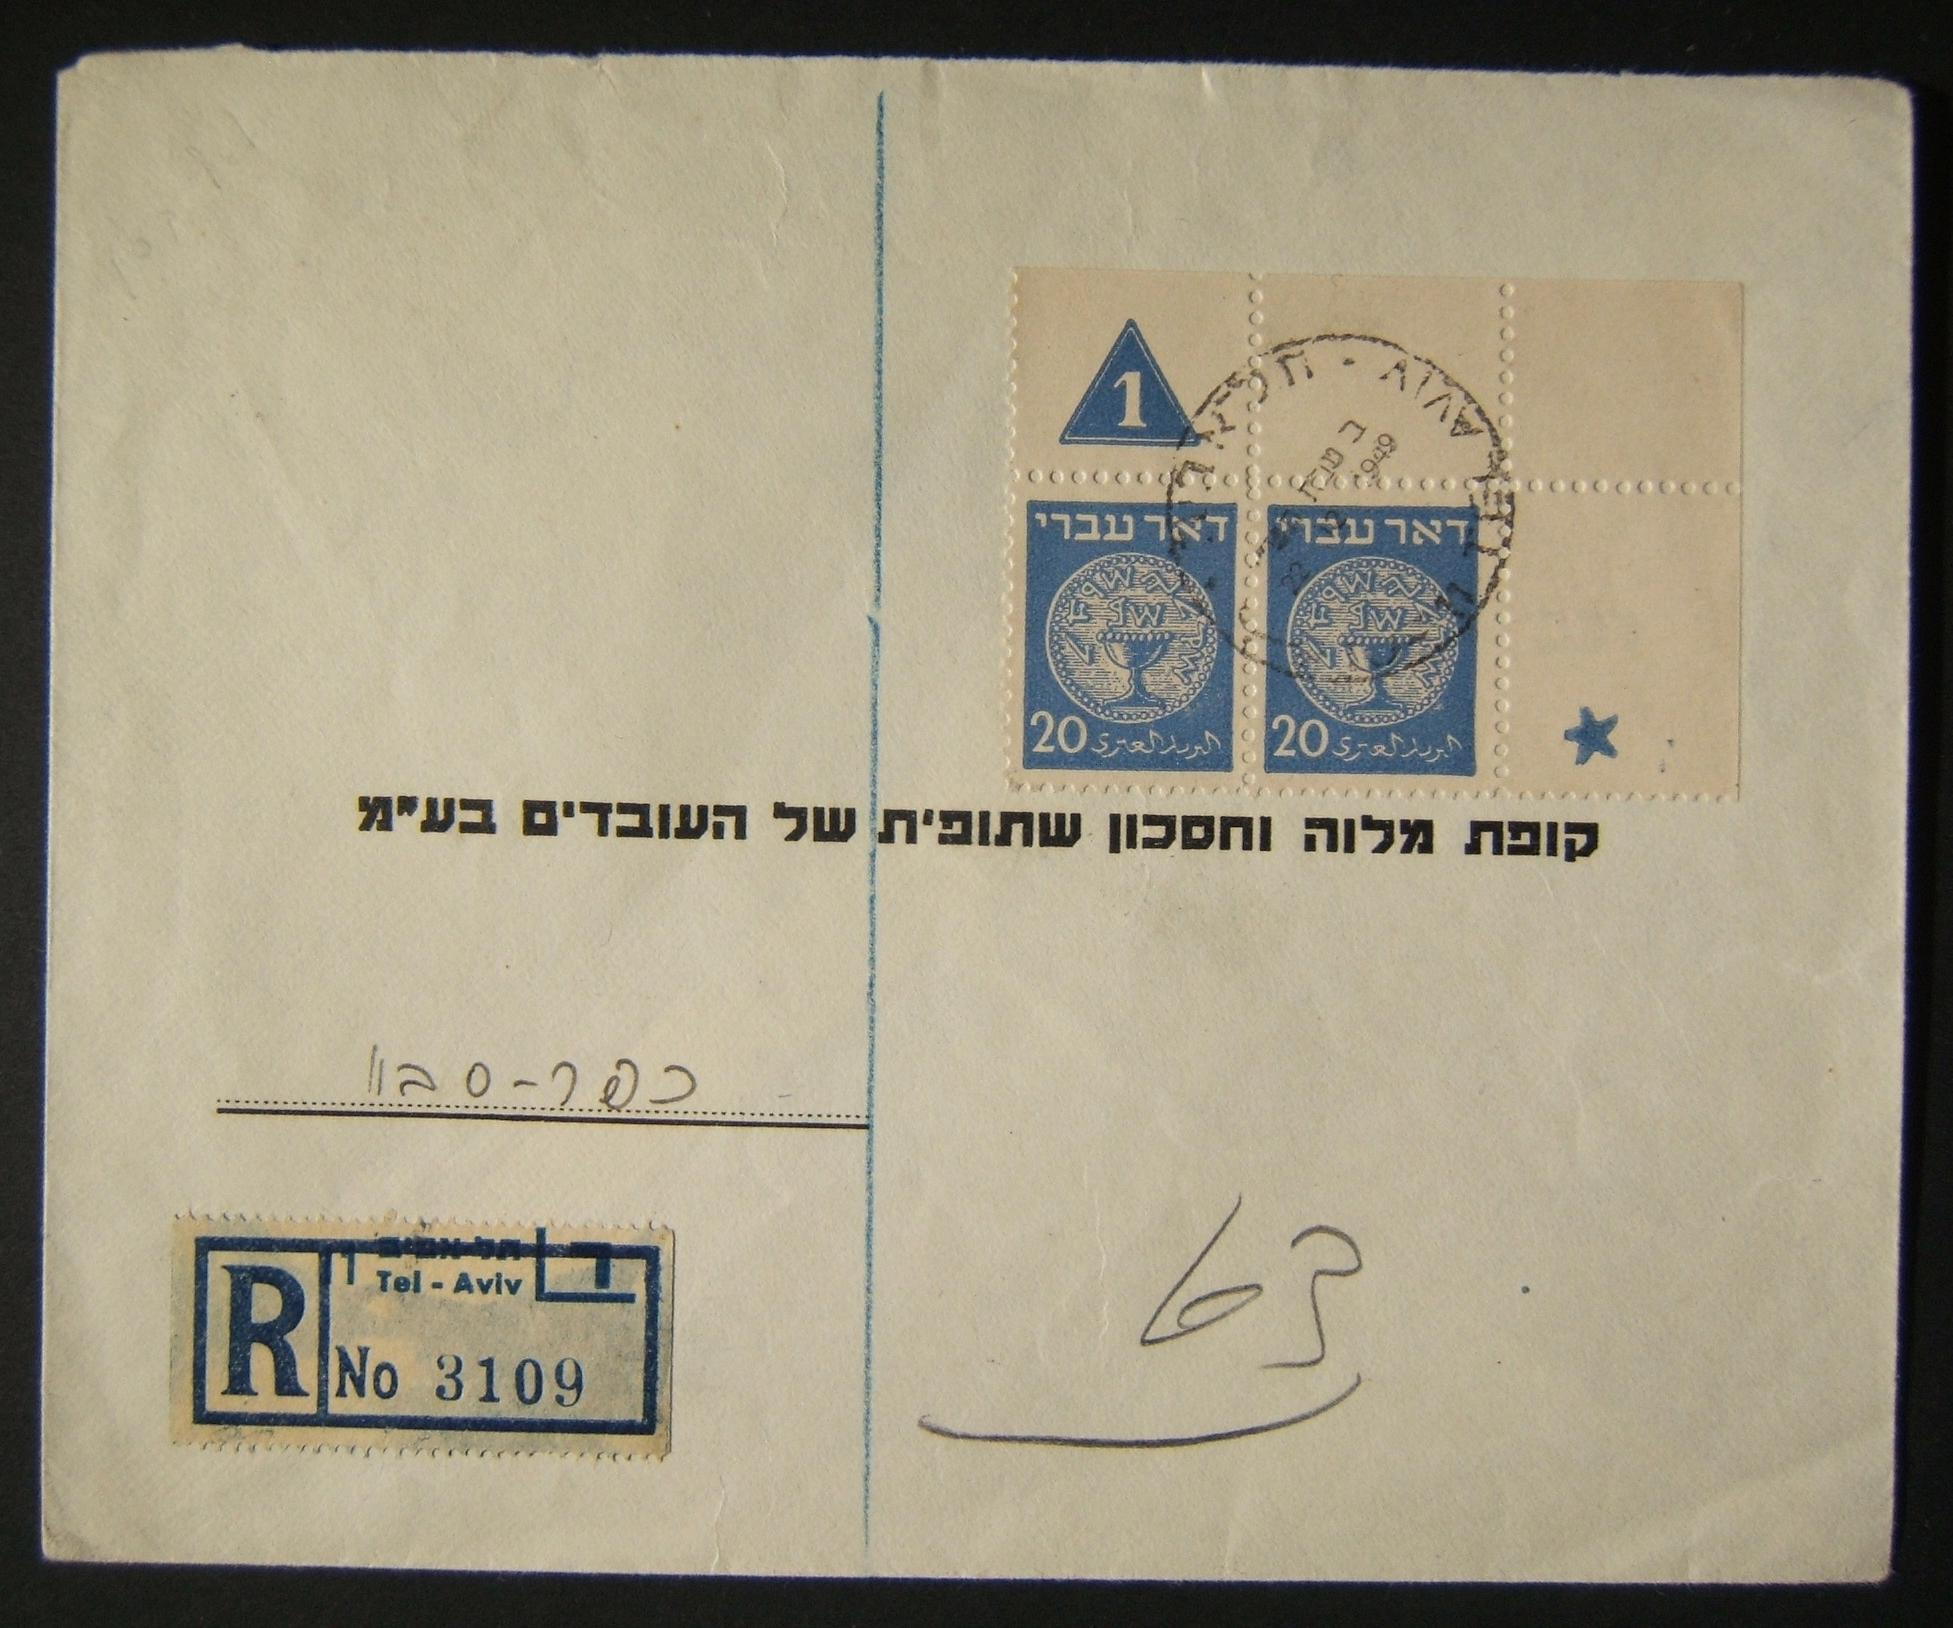 Doar Ivri PO's, rates & routes: 22-12-1949 commercial registered cover ex TLV to KEFAR SAVA franked 40pr at the DO-2 period rate (15pr letter + 25pr registration) using pair 20pr (